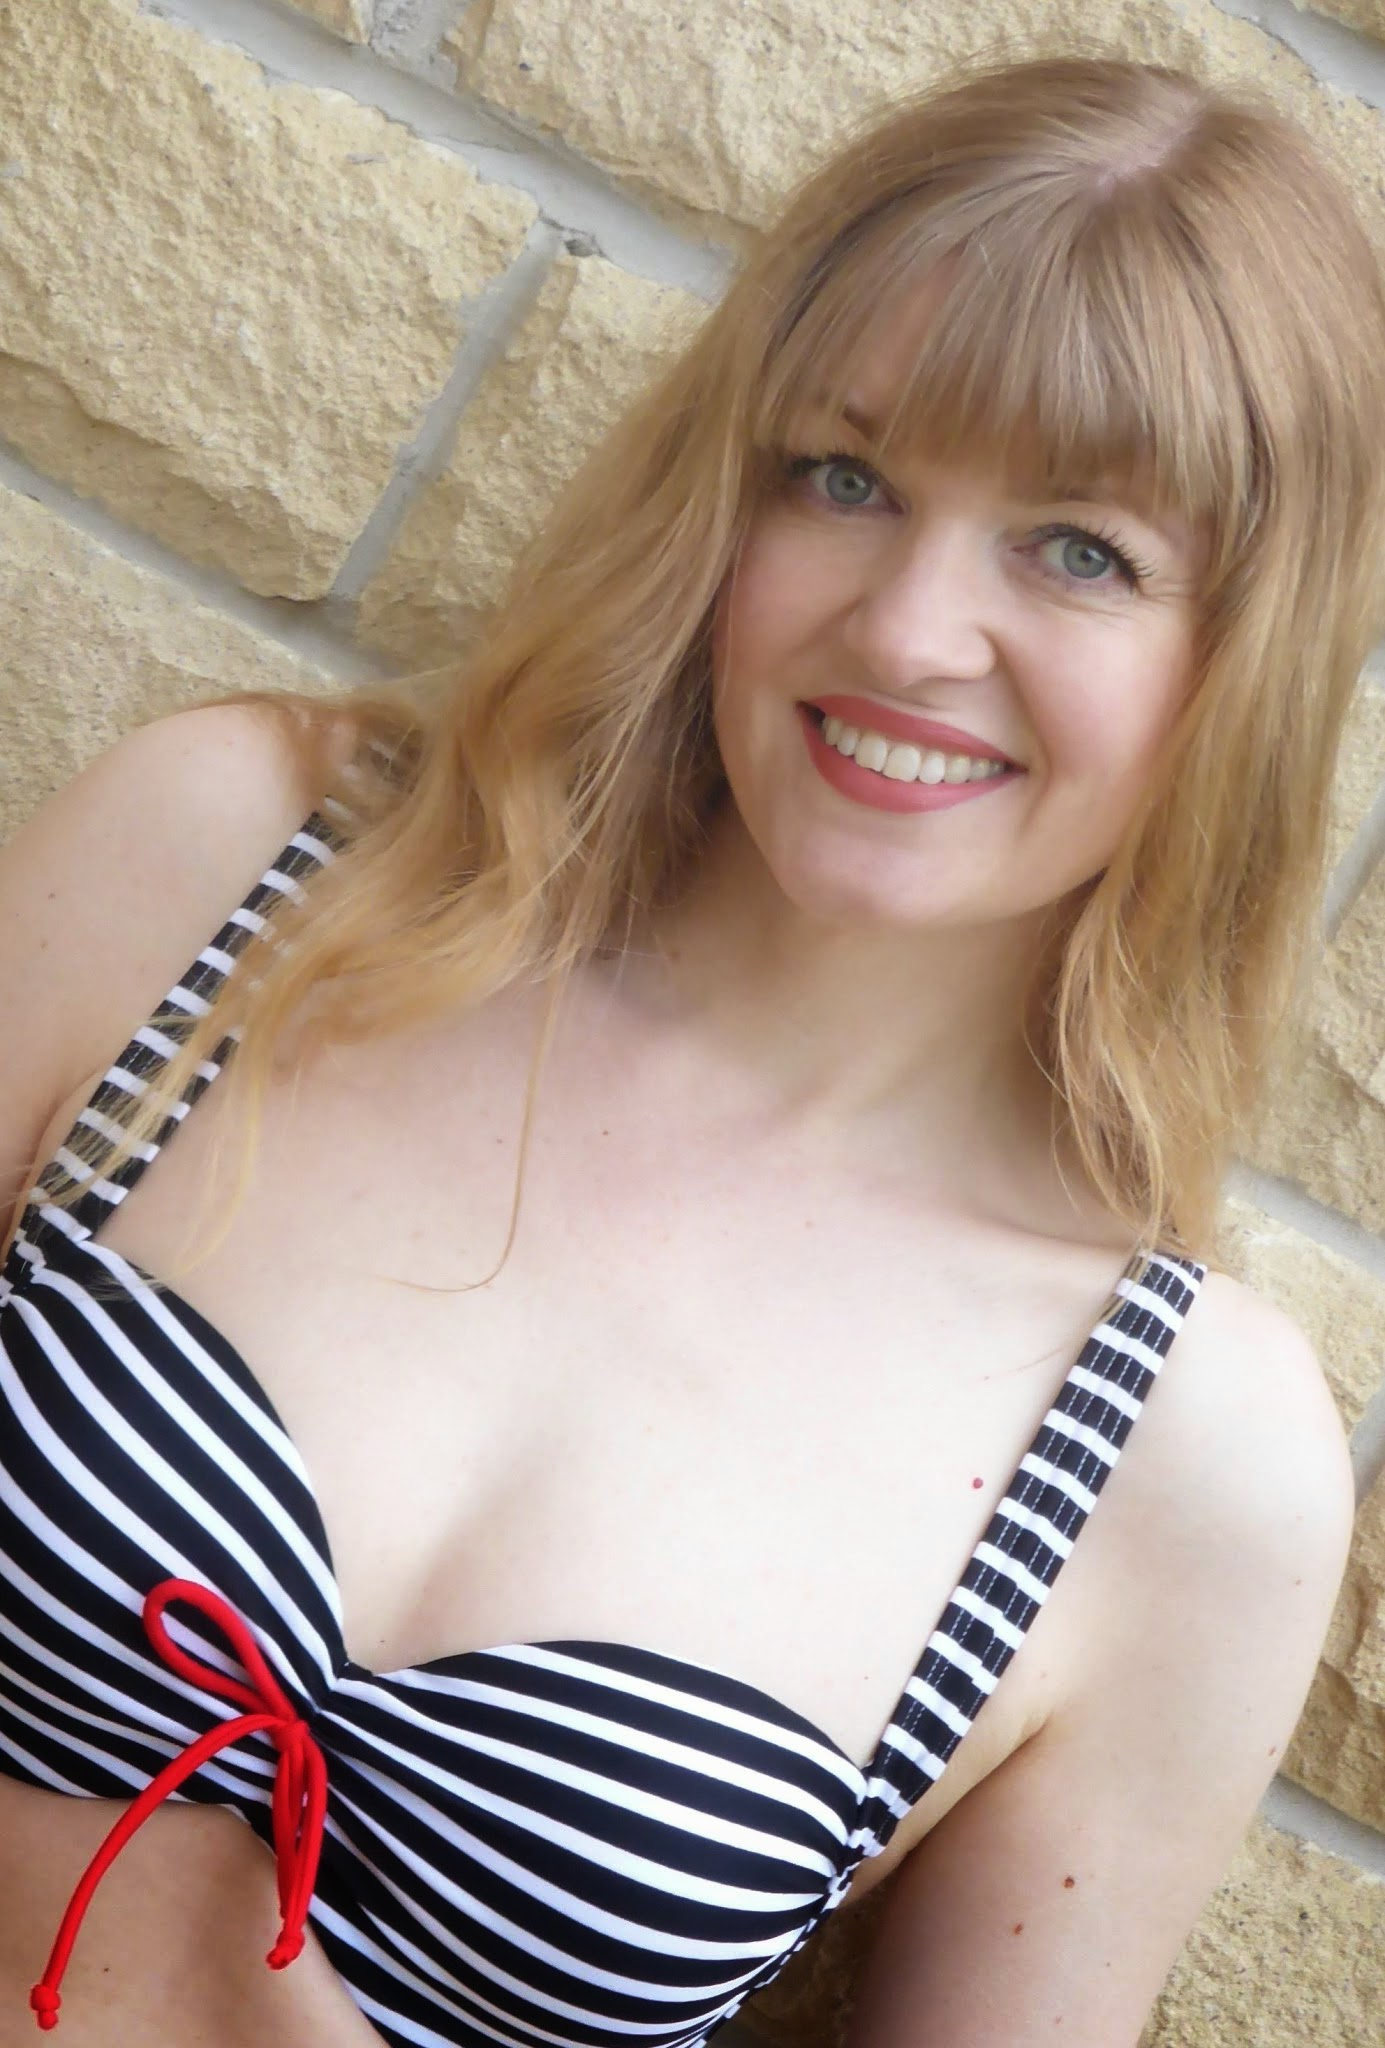 over 40 blogger What Lizzy Loves wearing navy and white striped nautical bikini. Bikini for over 40s. Can you wear a bikini over the age of 40